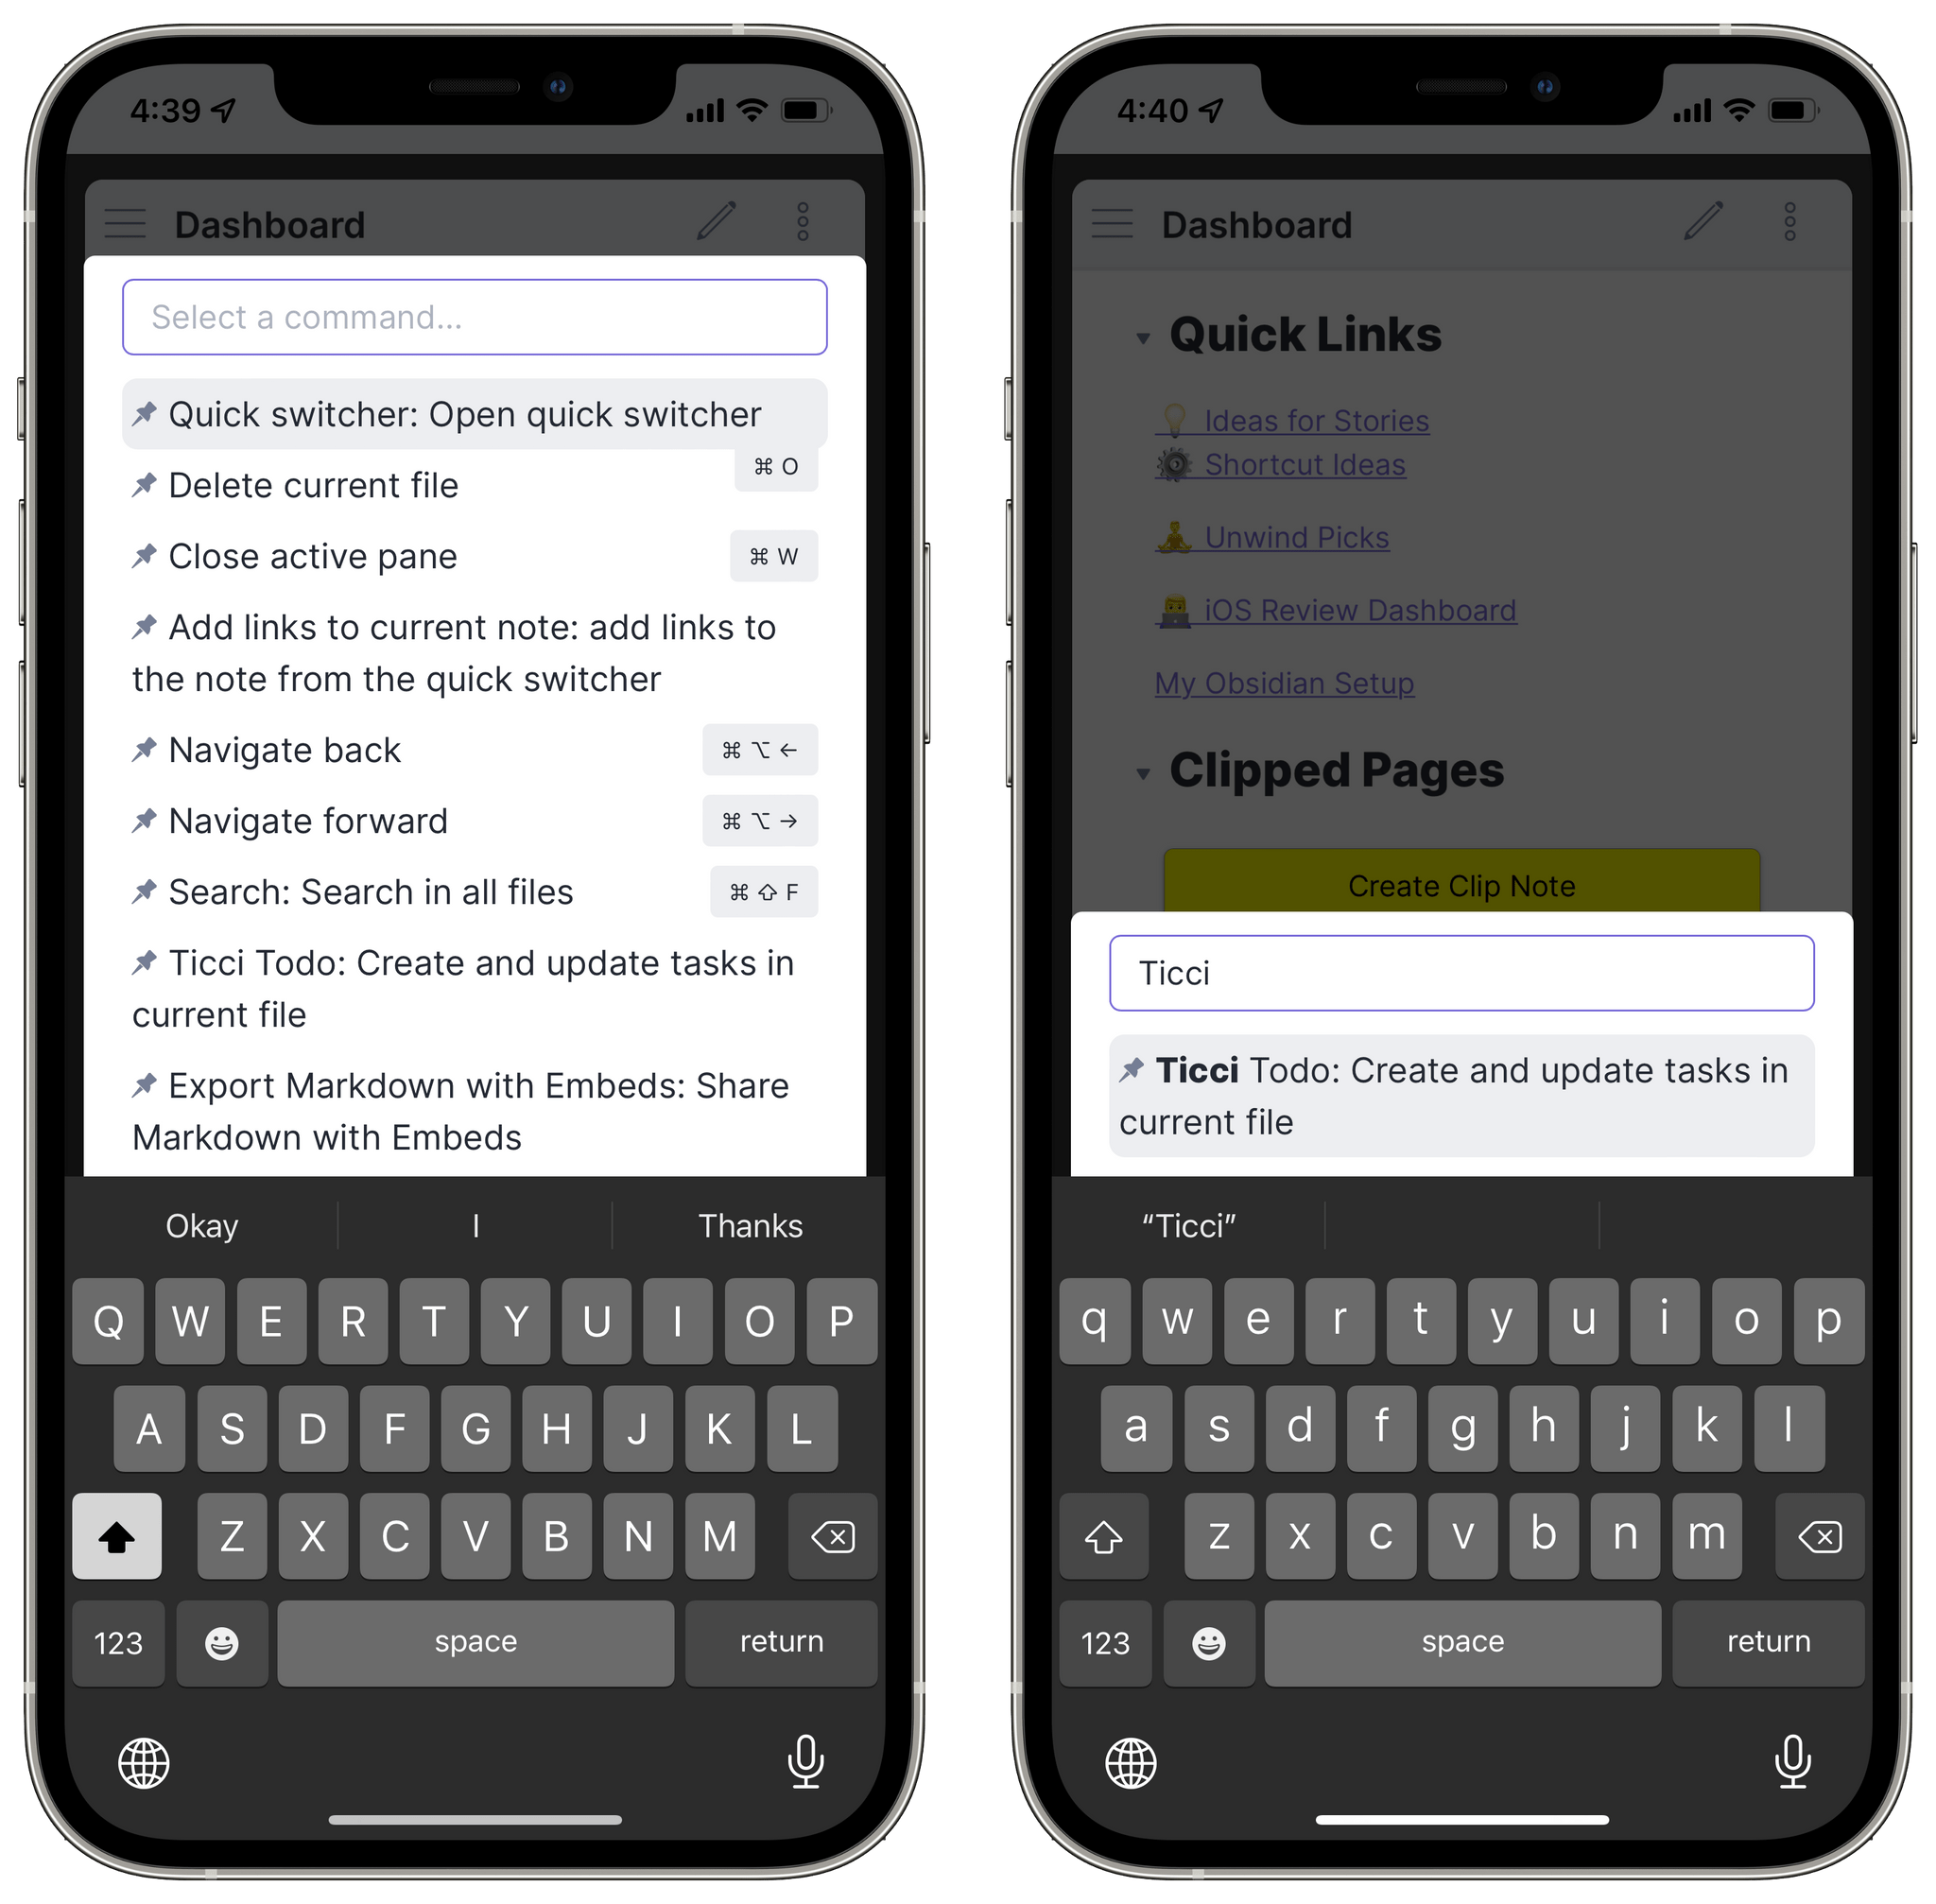 The command palette lets you search for commands by name.